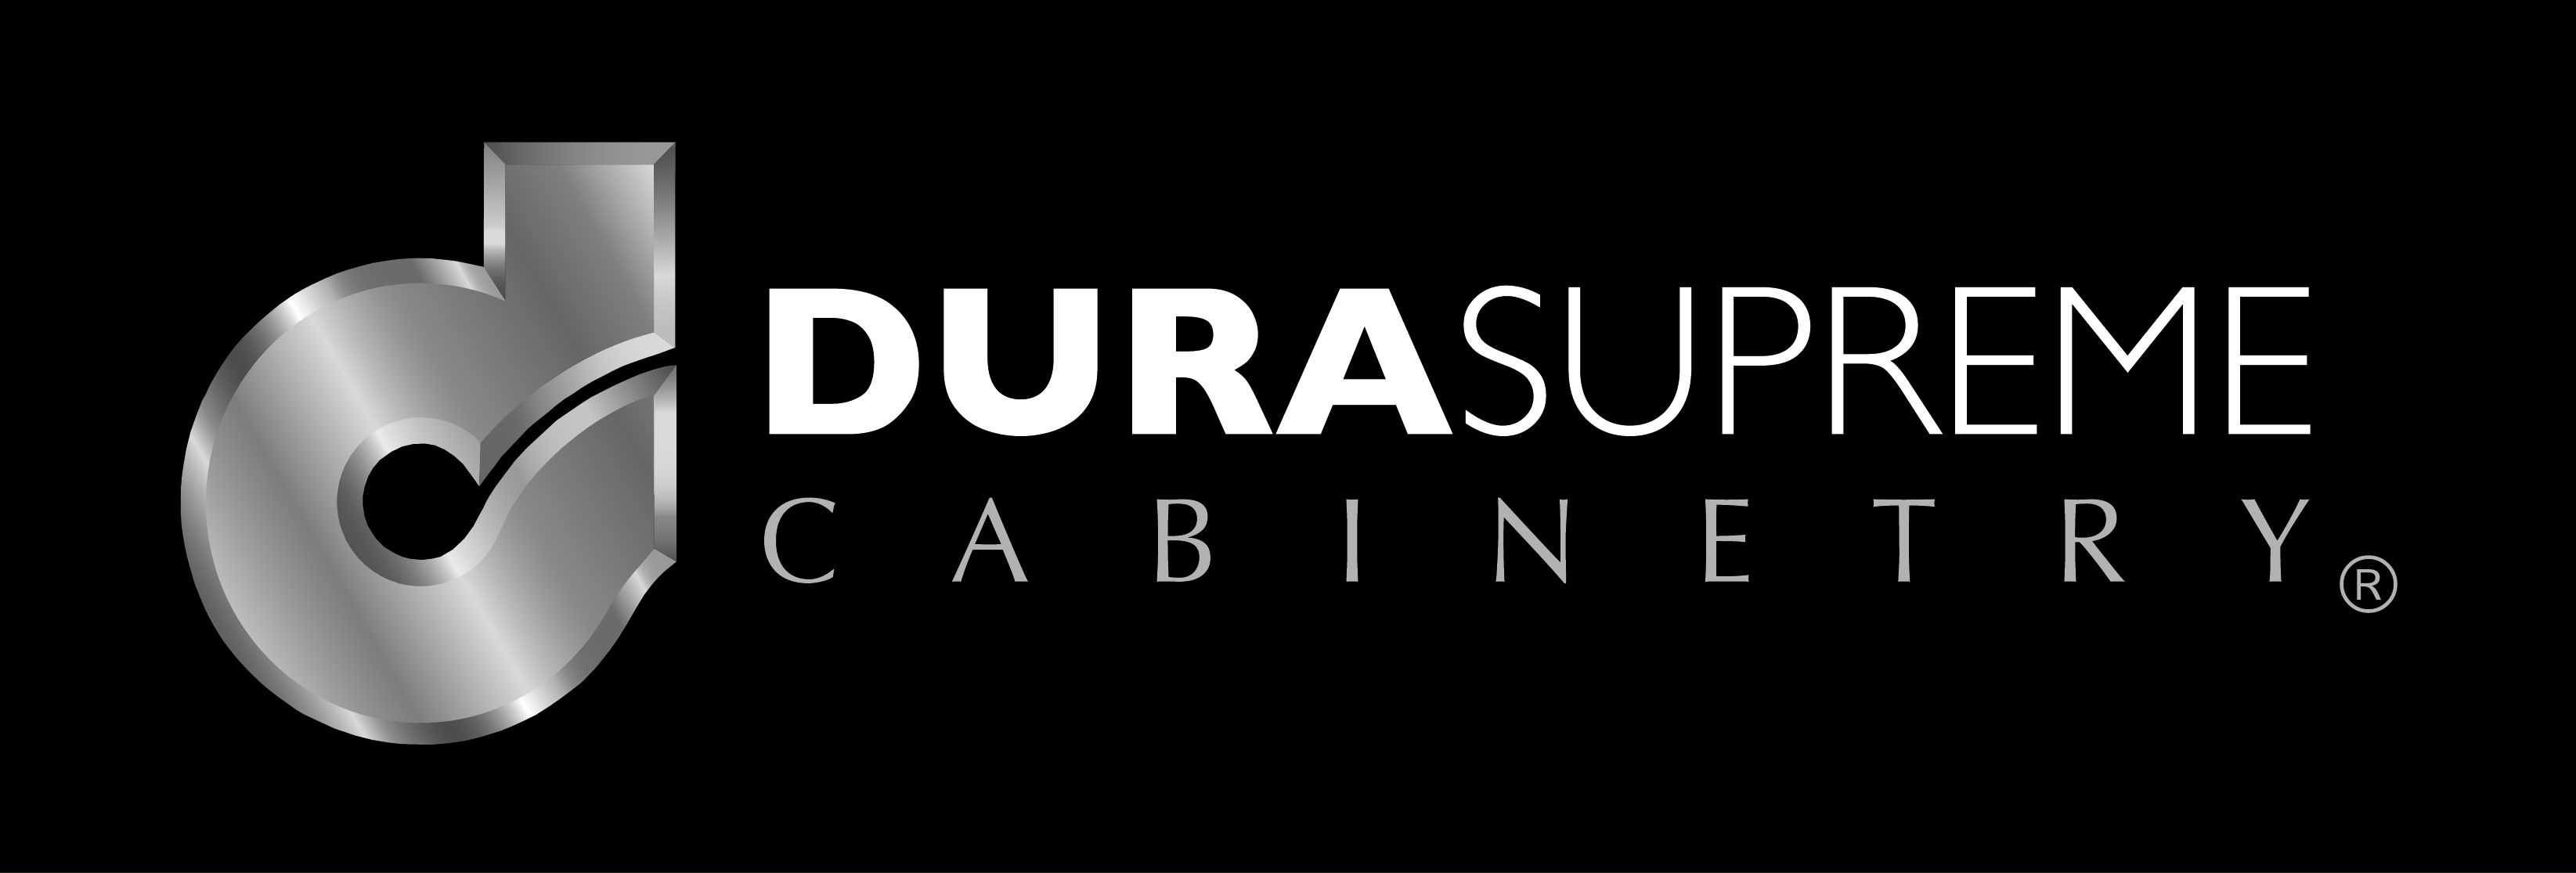 dura supreme cabinets logo black cabinetry columbus